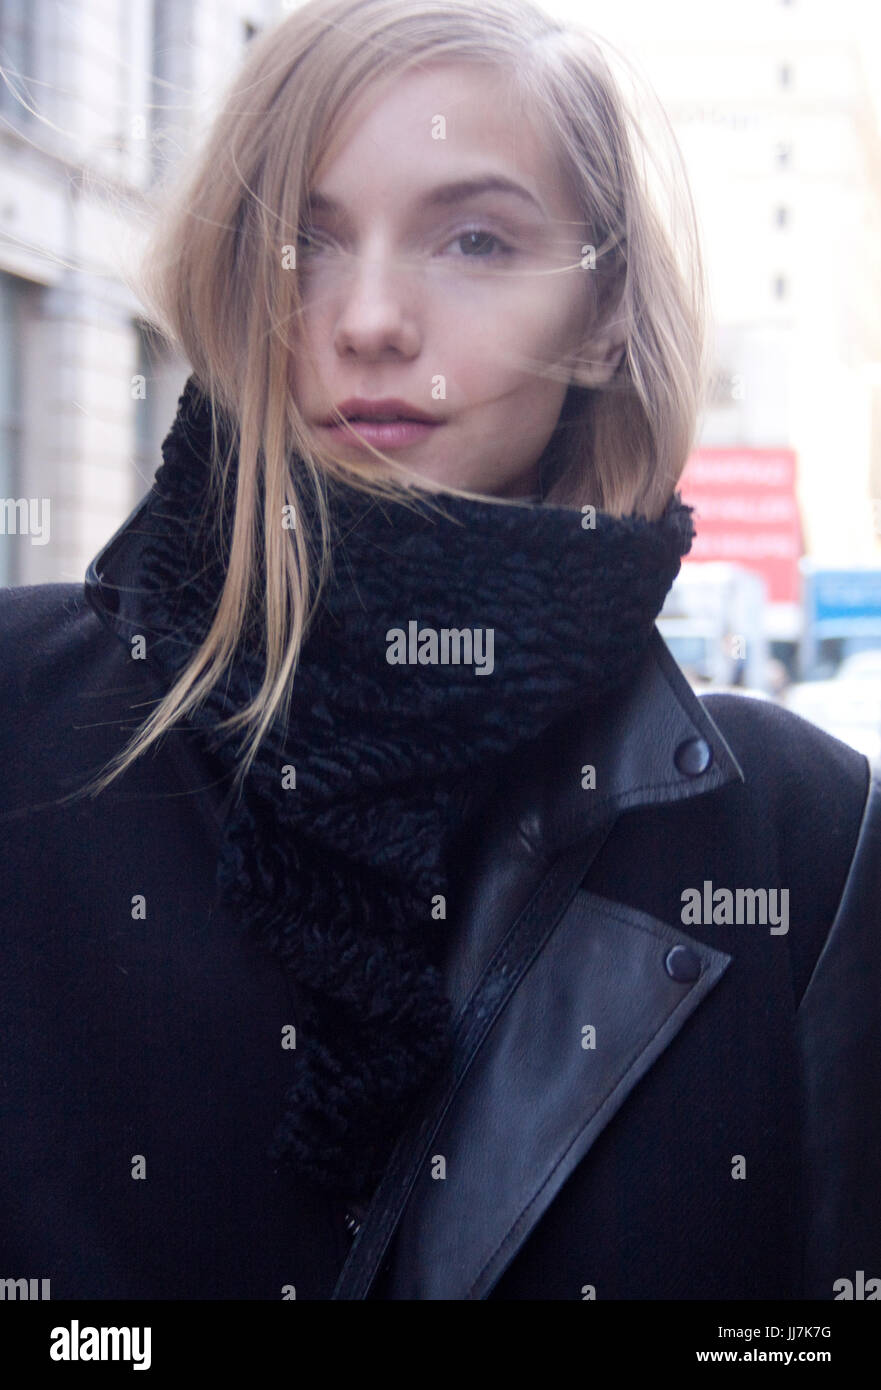 No Makeup beauty portrait of Fashion model during New York Fashion Week - Stock Image